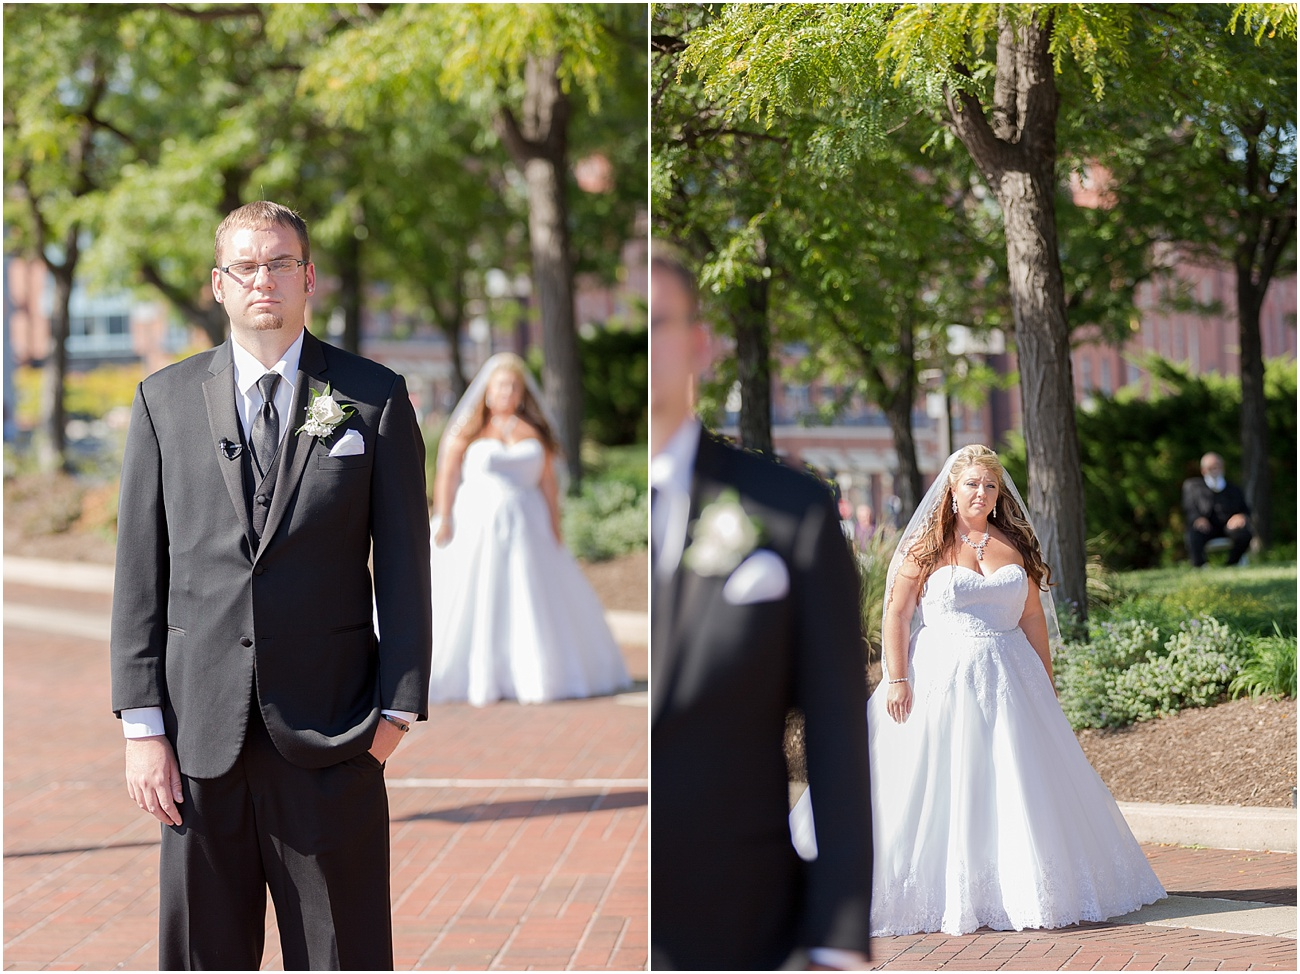 Tabrizis_Baltimore_Maryland_Wedding_Photographer_0045